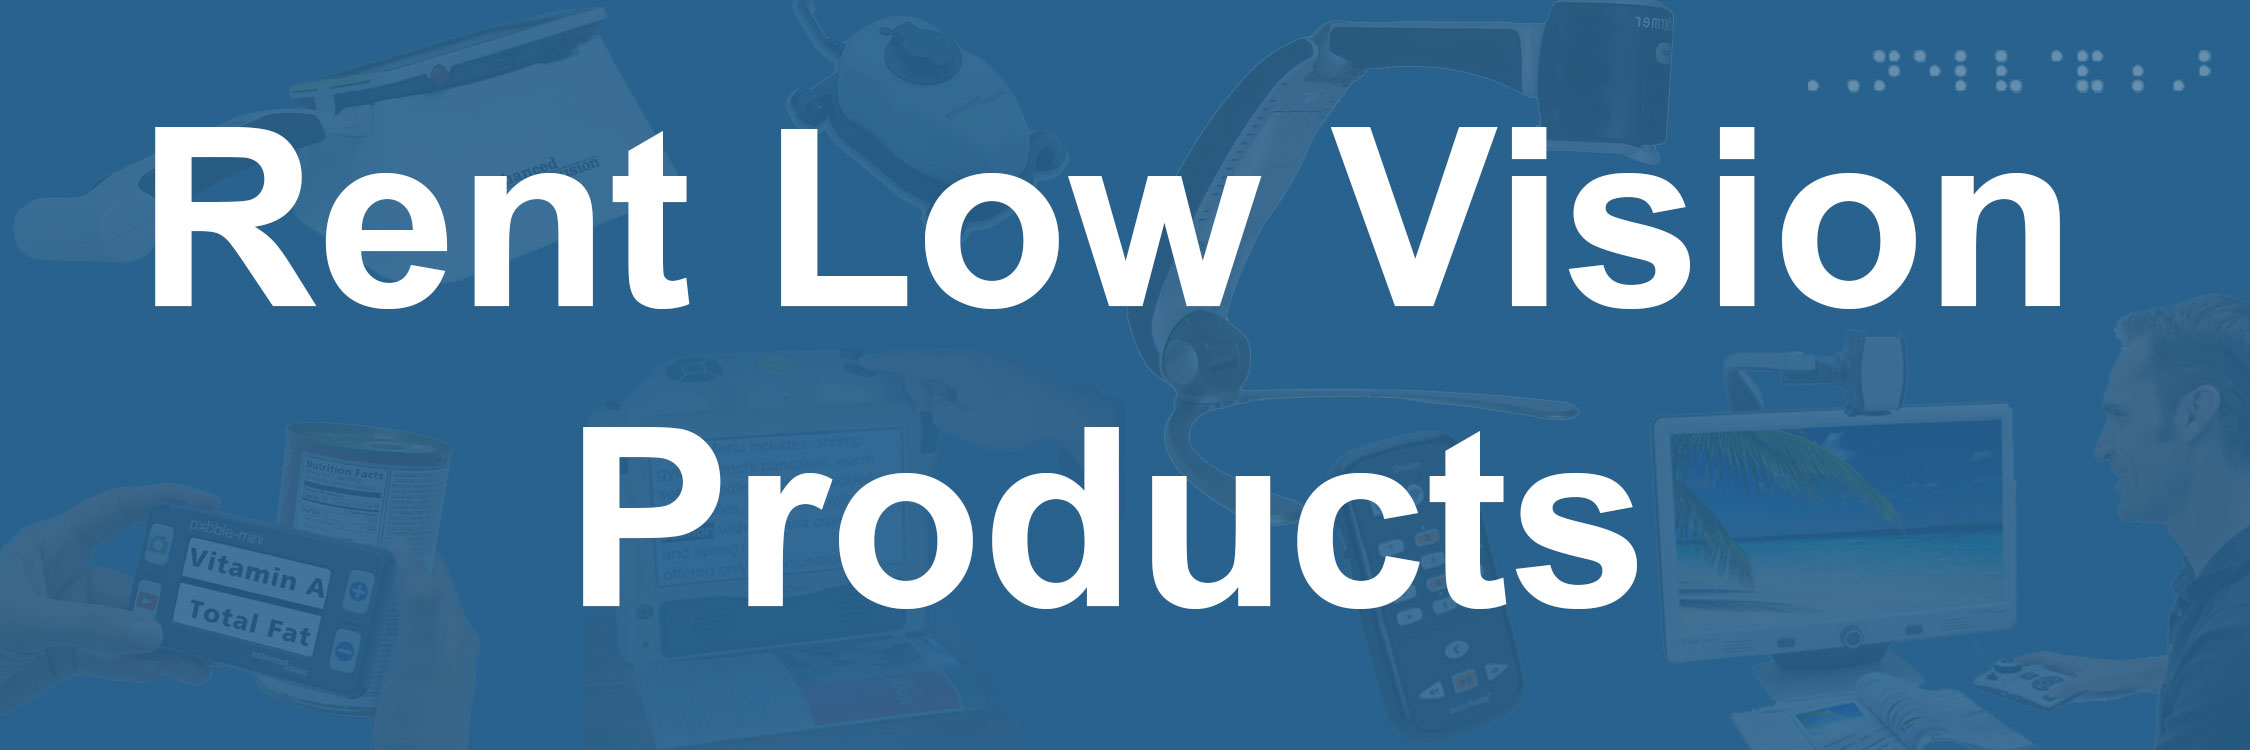 Low Vision Product Rental Services New England Low Vision